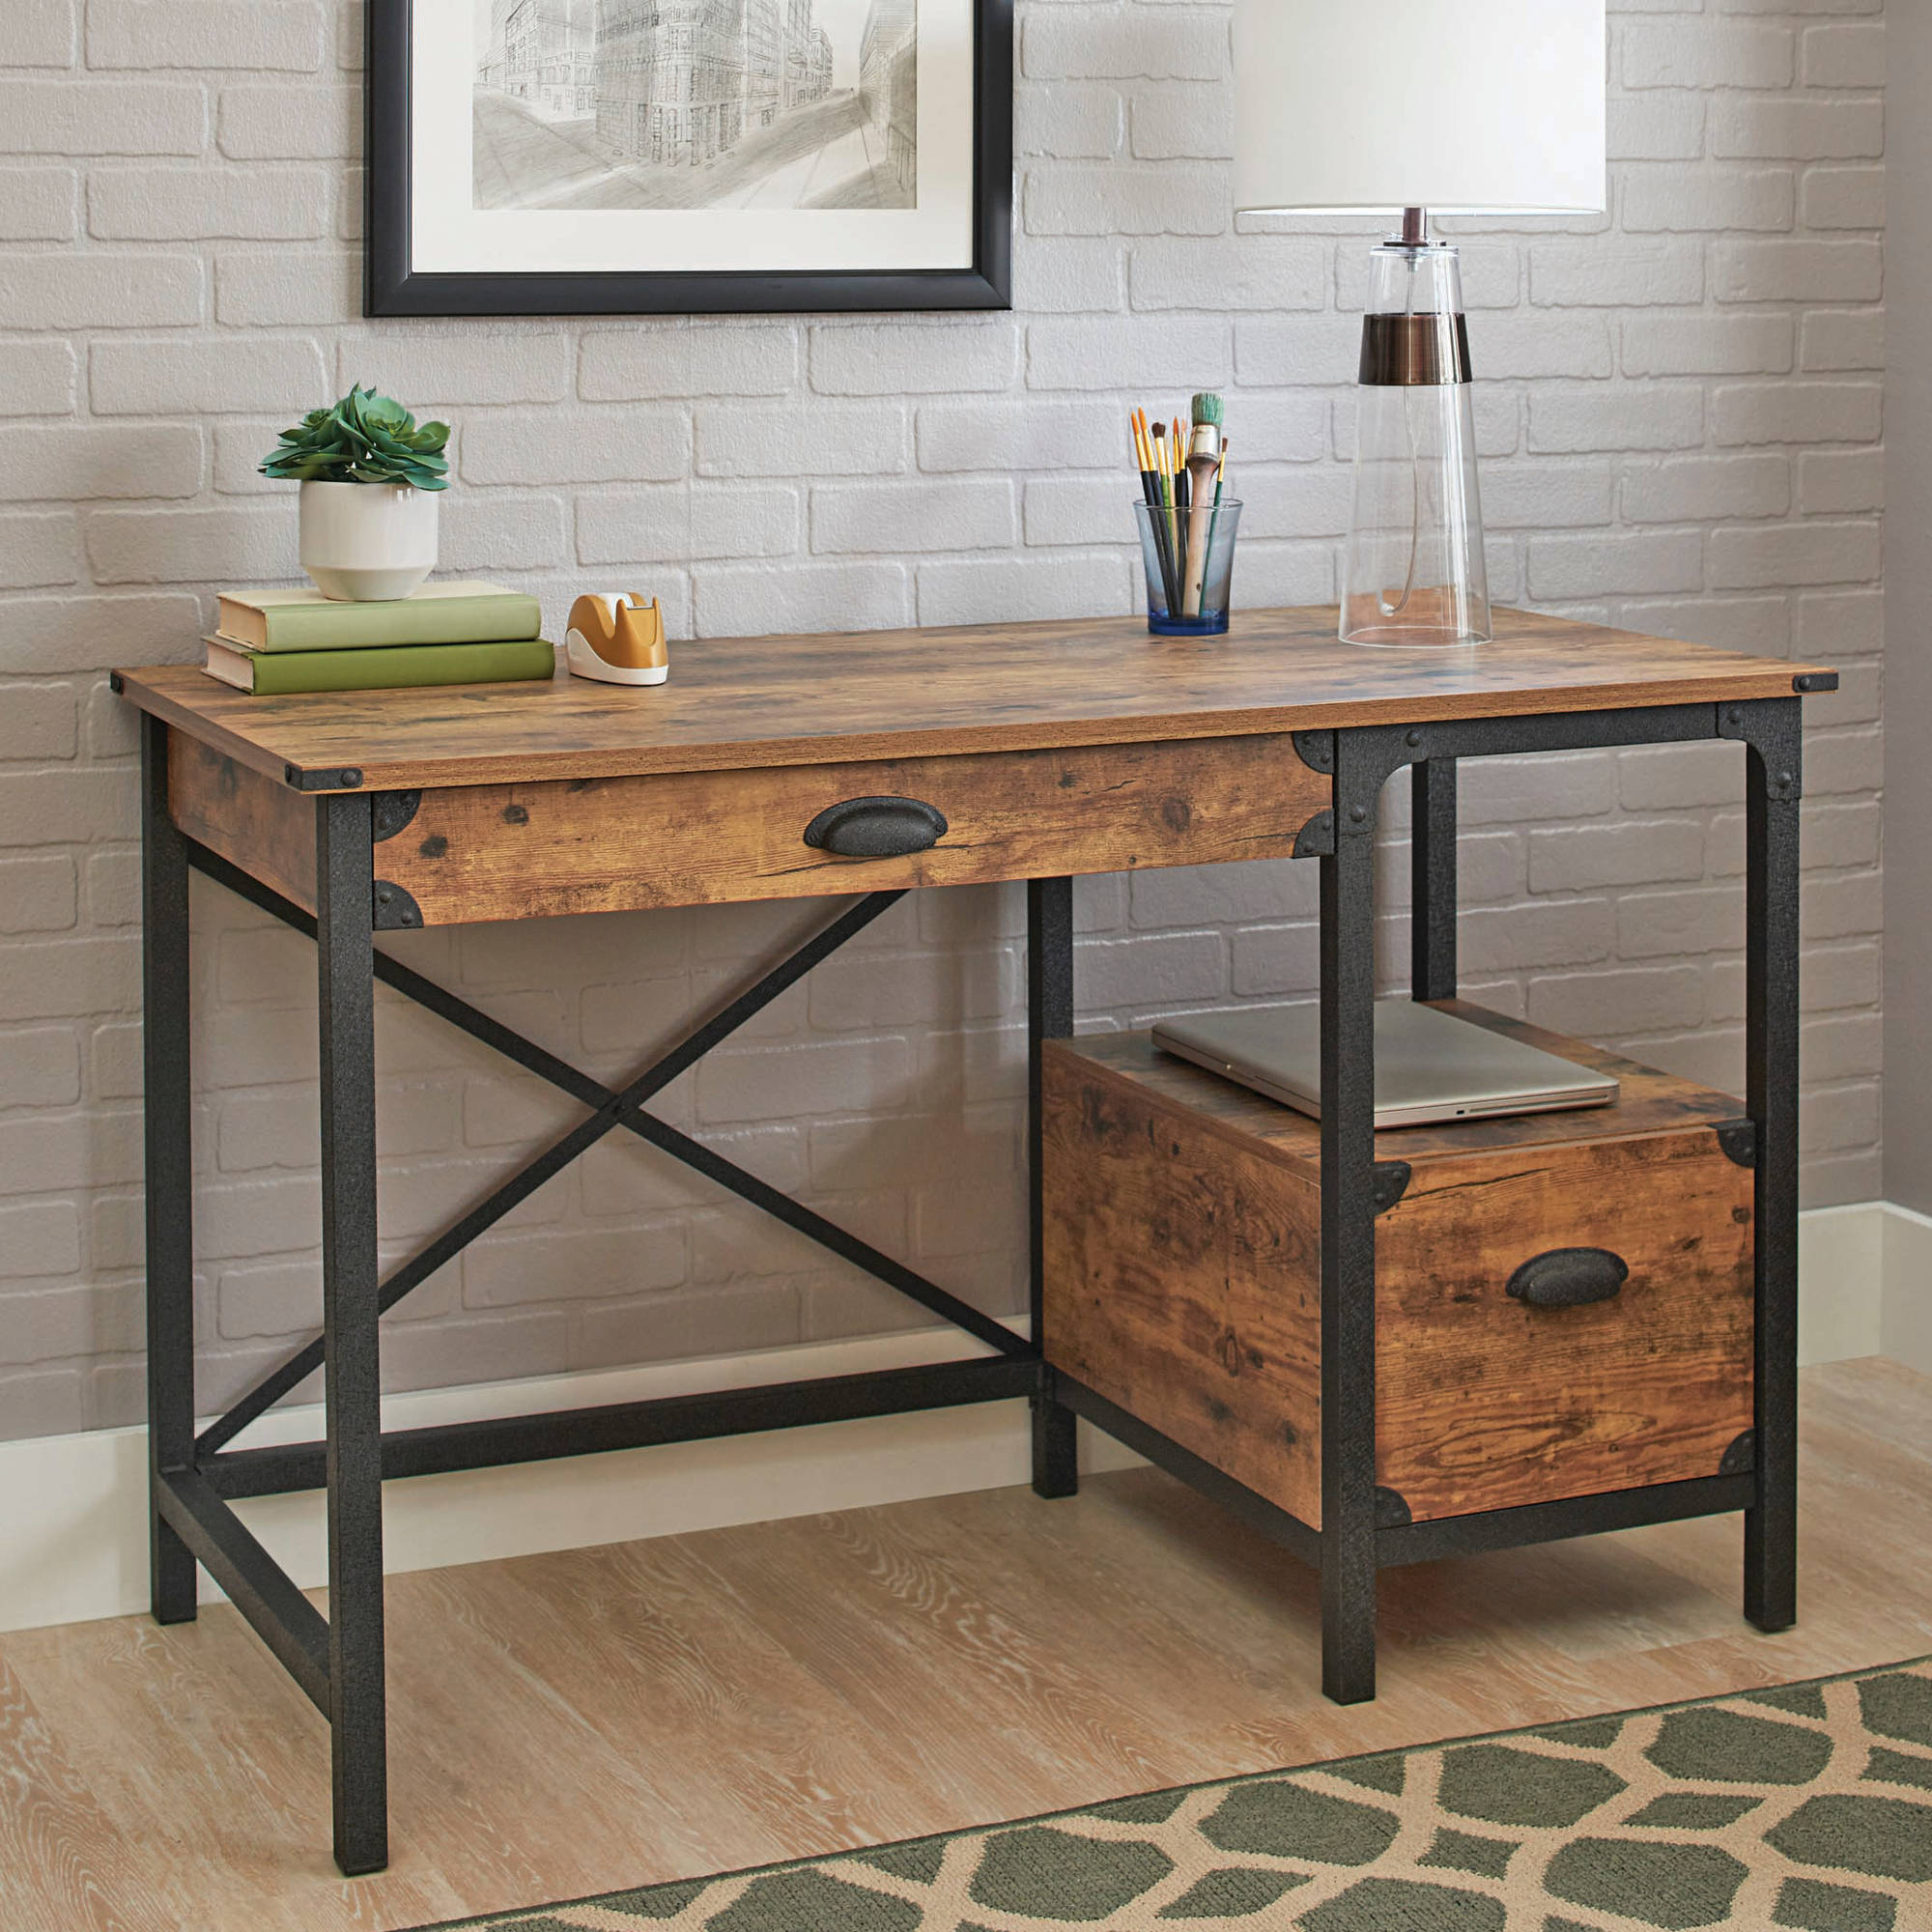 image country office better homes gardens rustic country desk weathered pine finish walmartcom